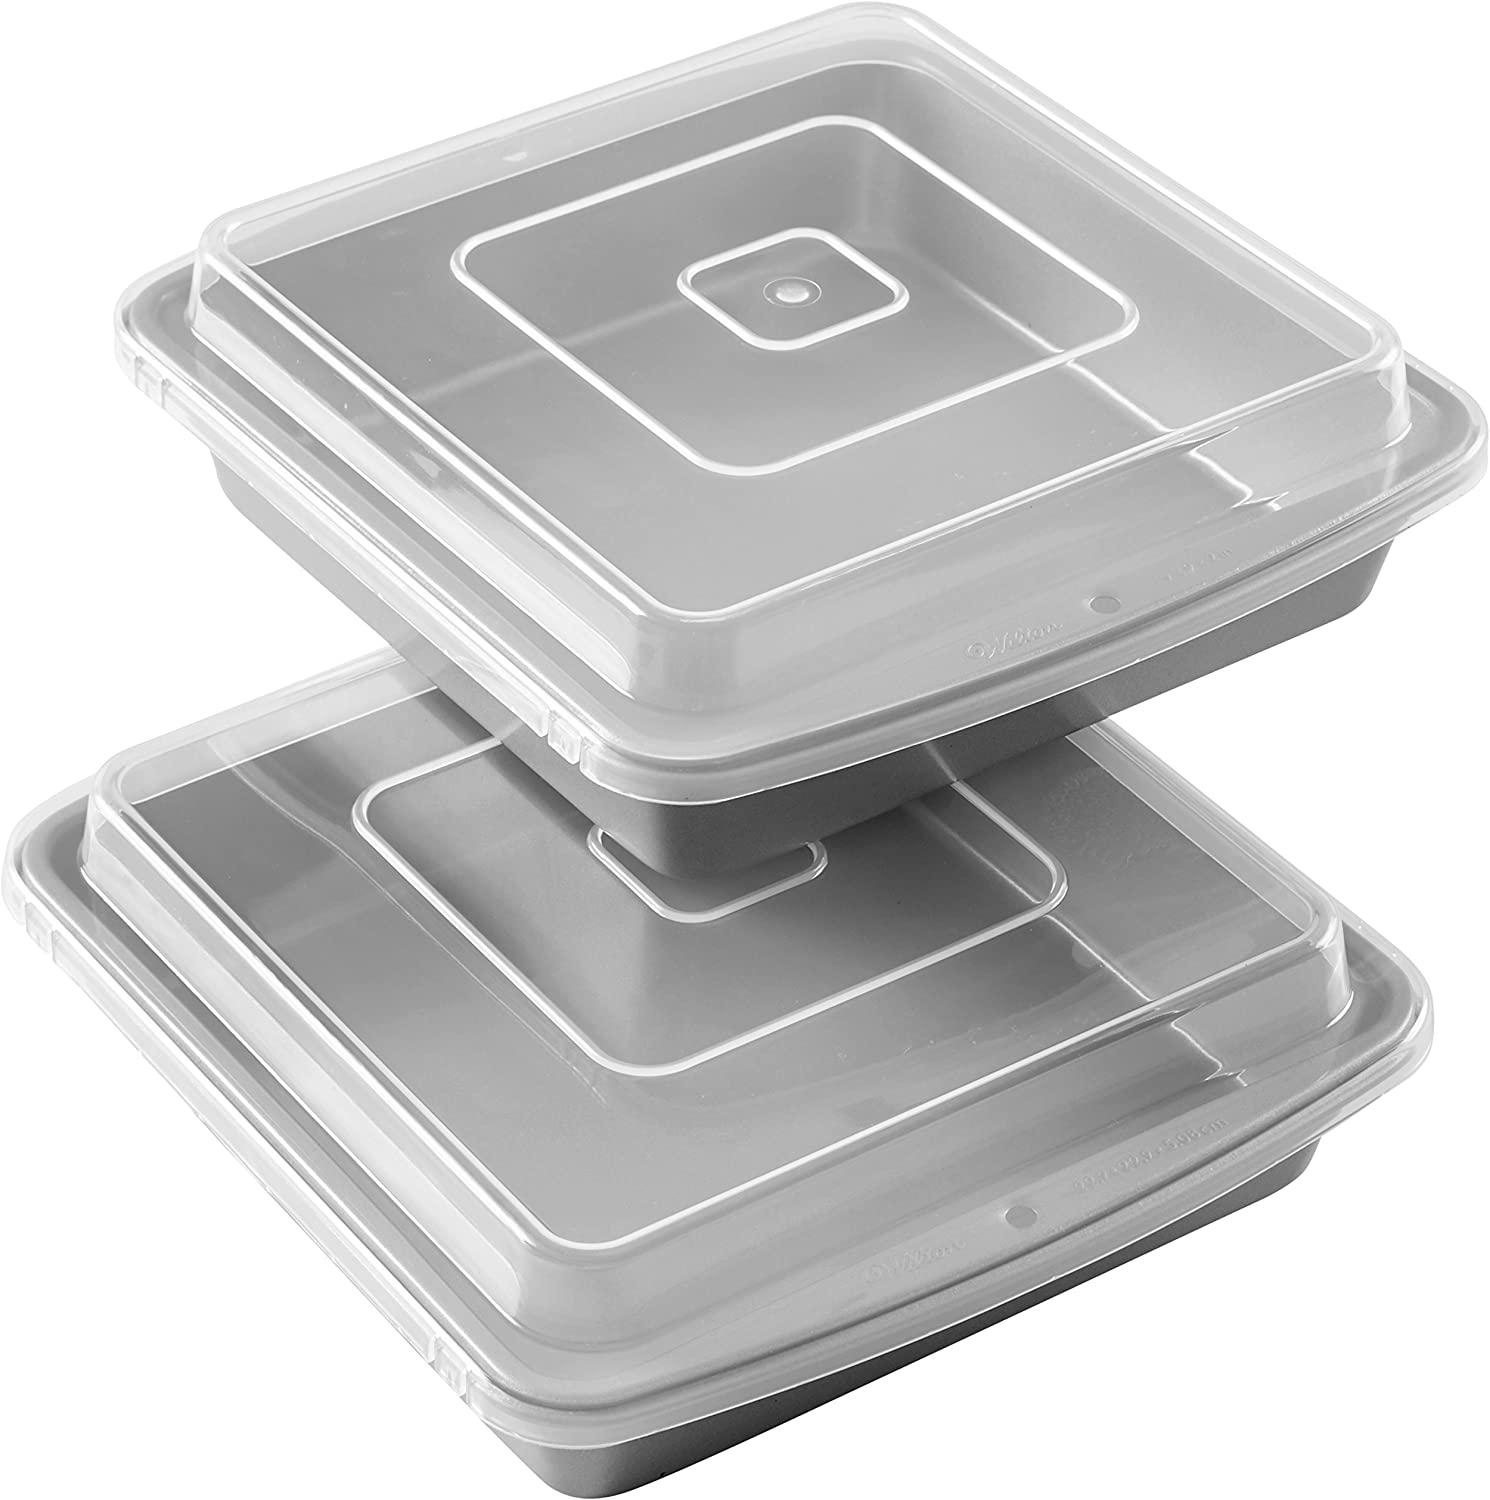 Wilton Recipe Right Non-Stick 9-Inch Square Baking Pan with Lid, Set of 2